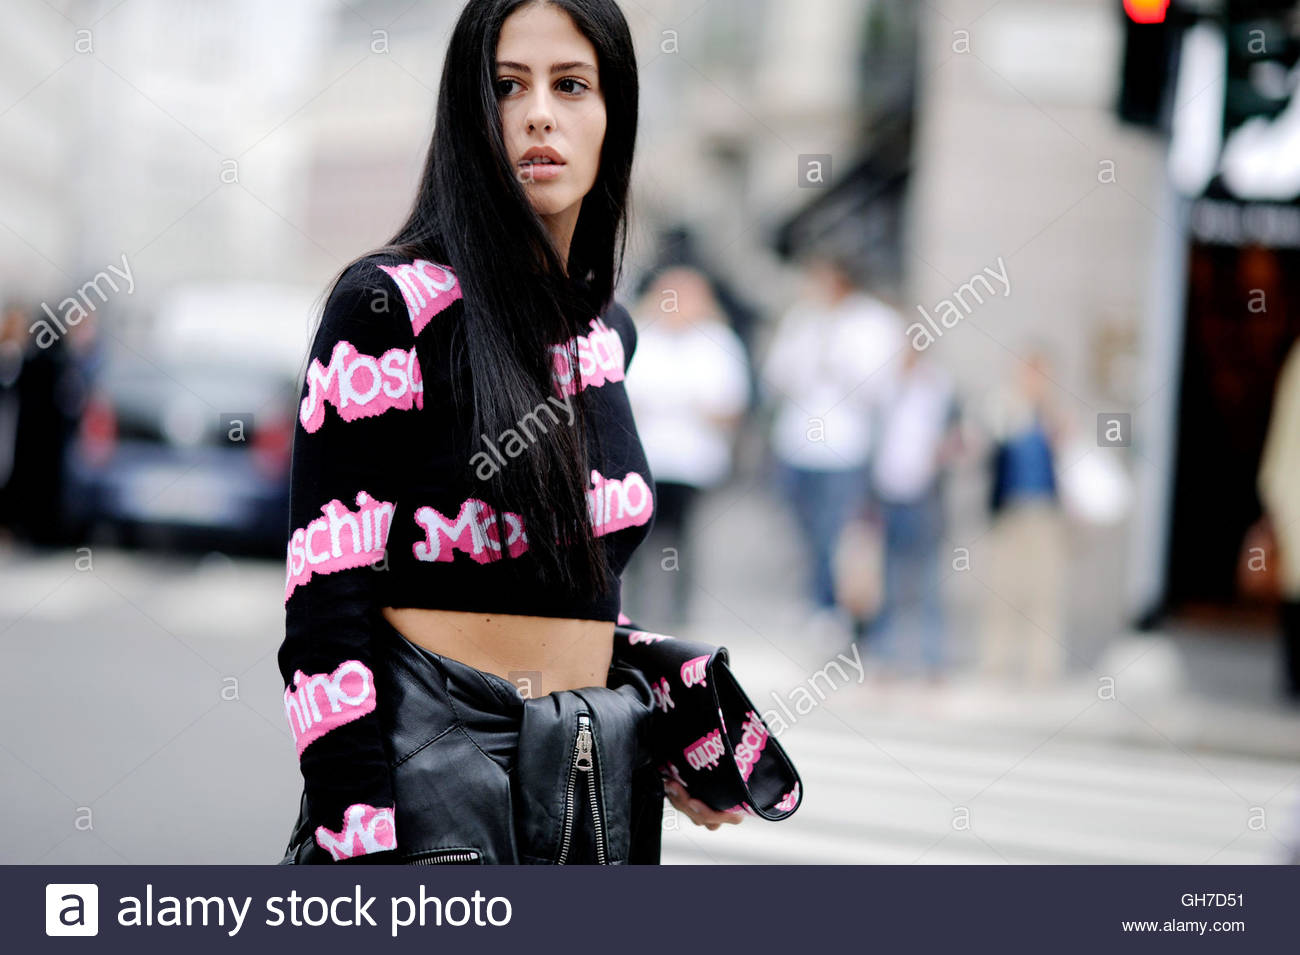 Gilda Ambrosio Milan, during Milan Fashion Week. - Stock Image